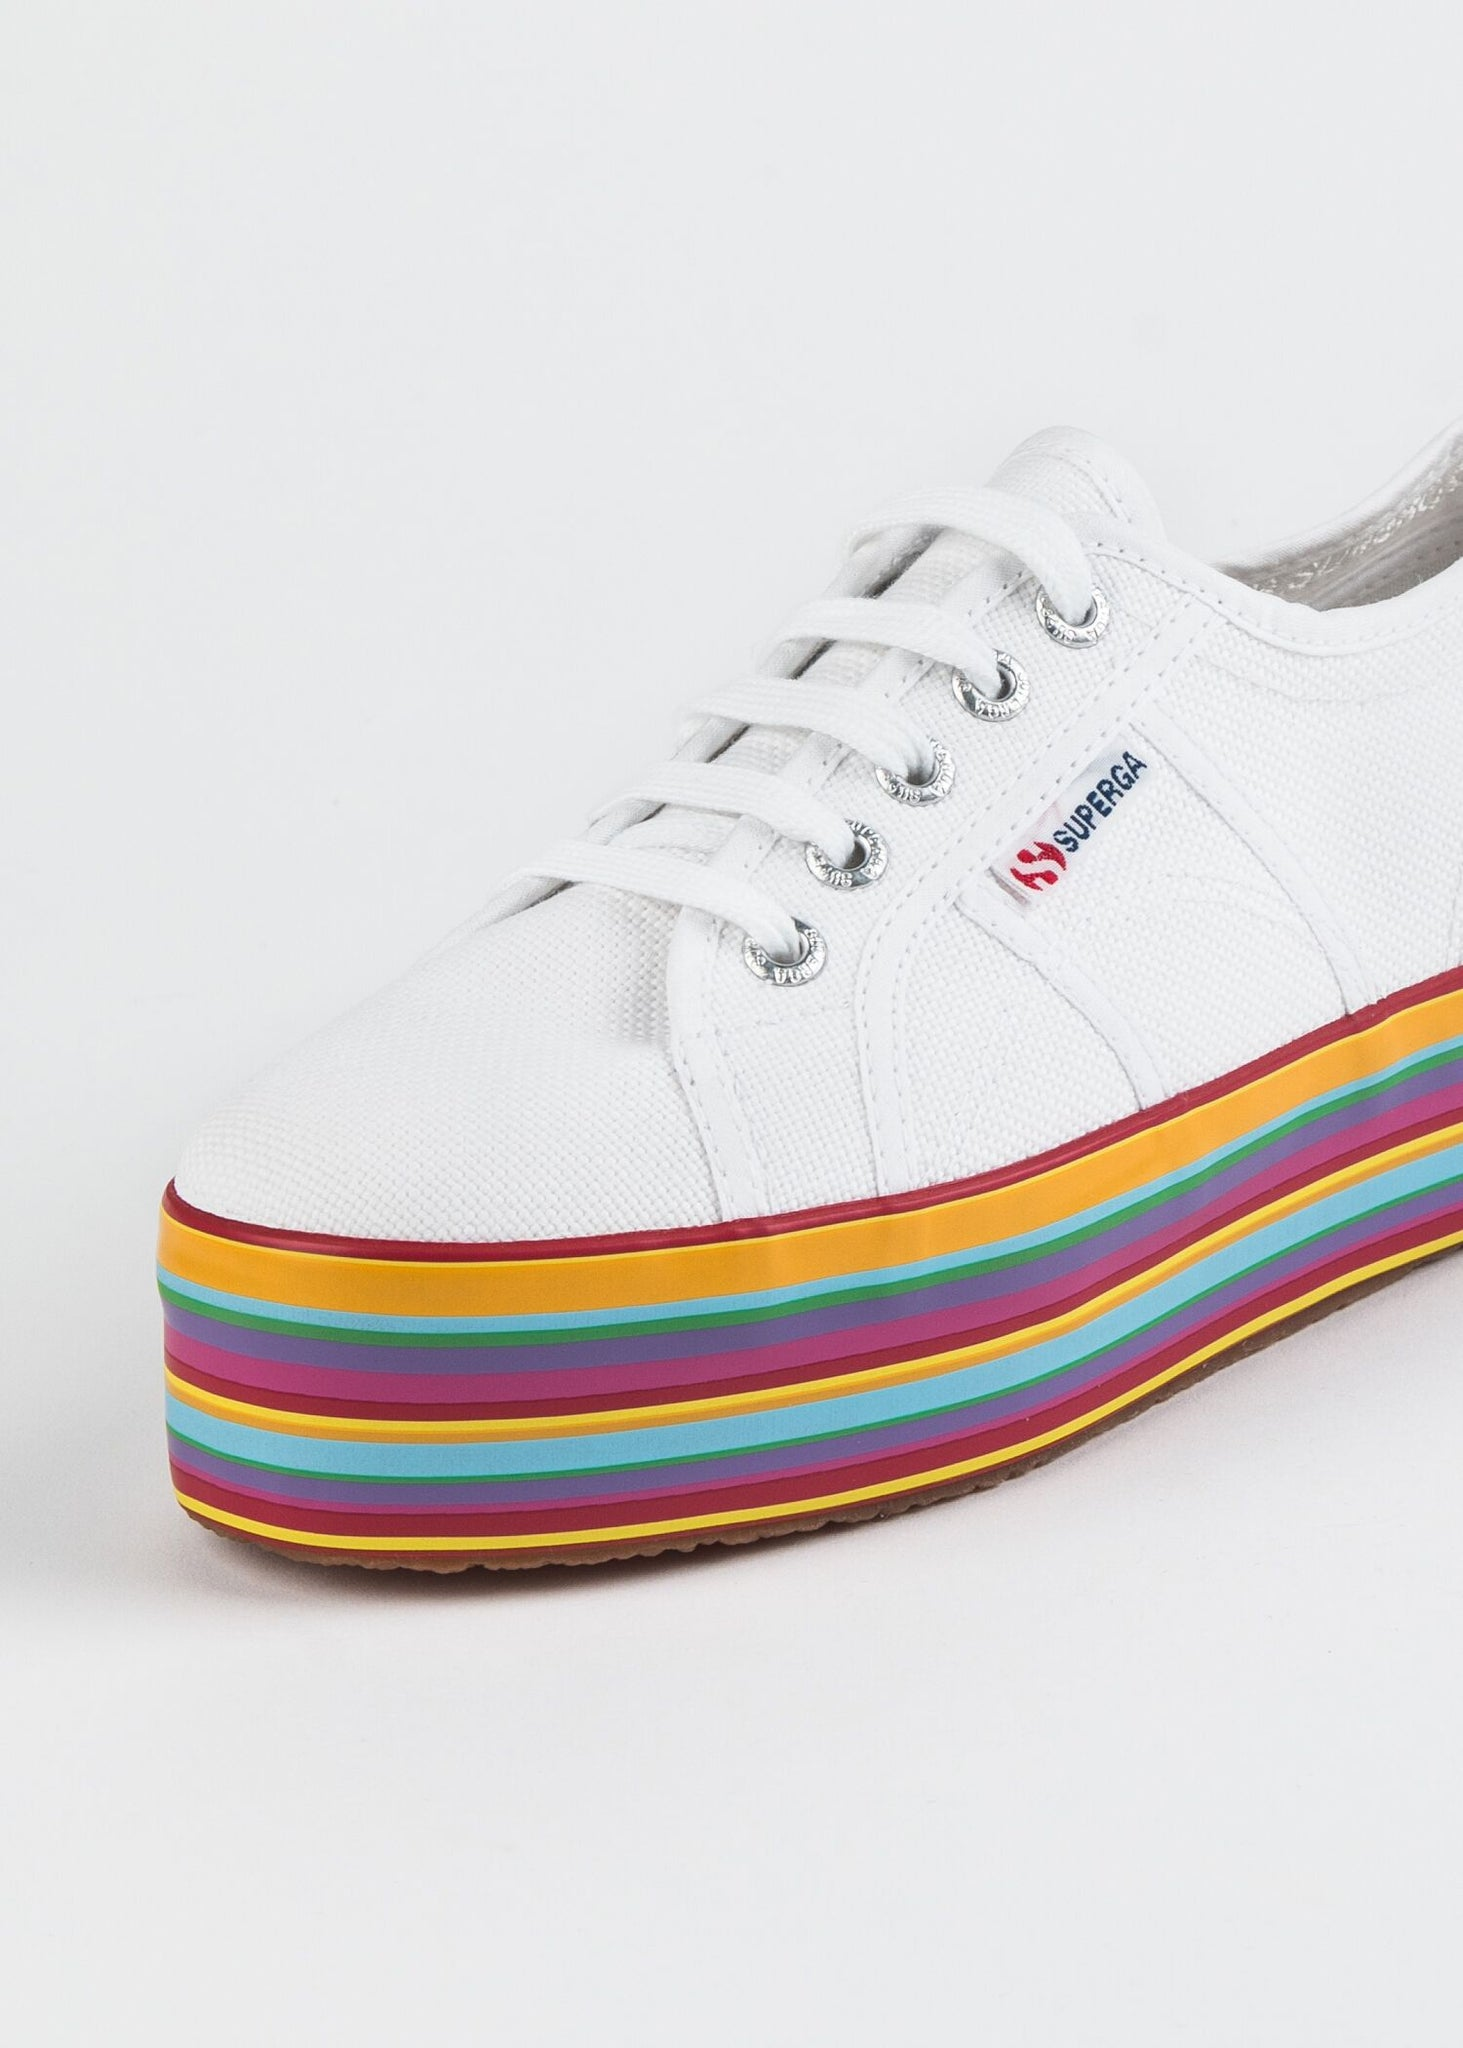 CANVAS LACE UP SNEAKER ON MULTI COLORED PLATFORM